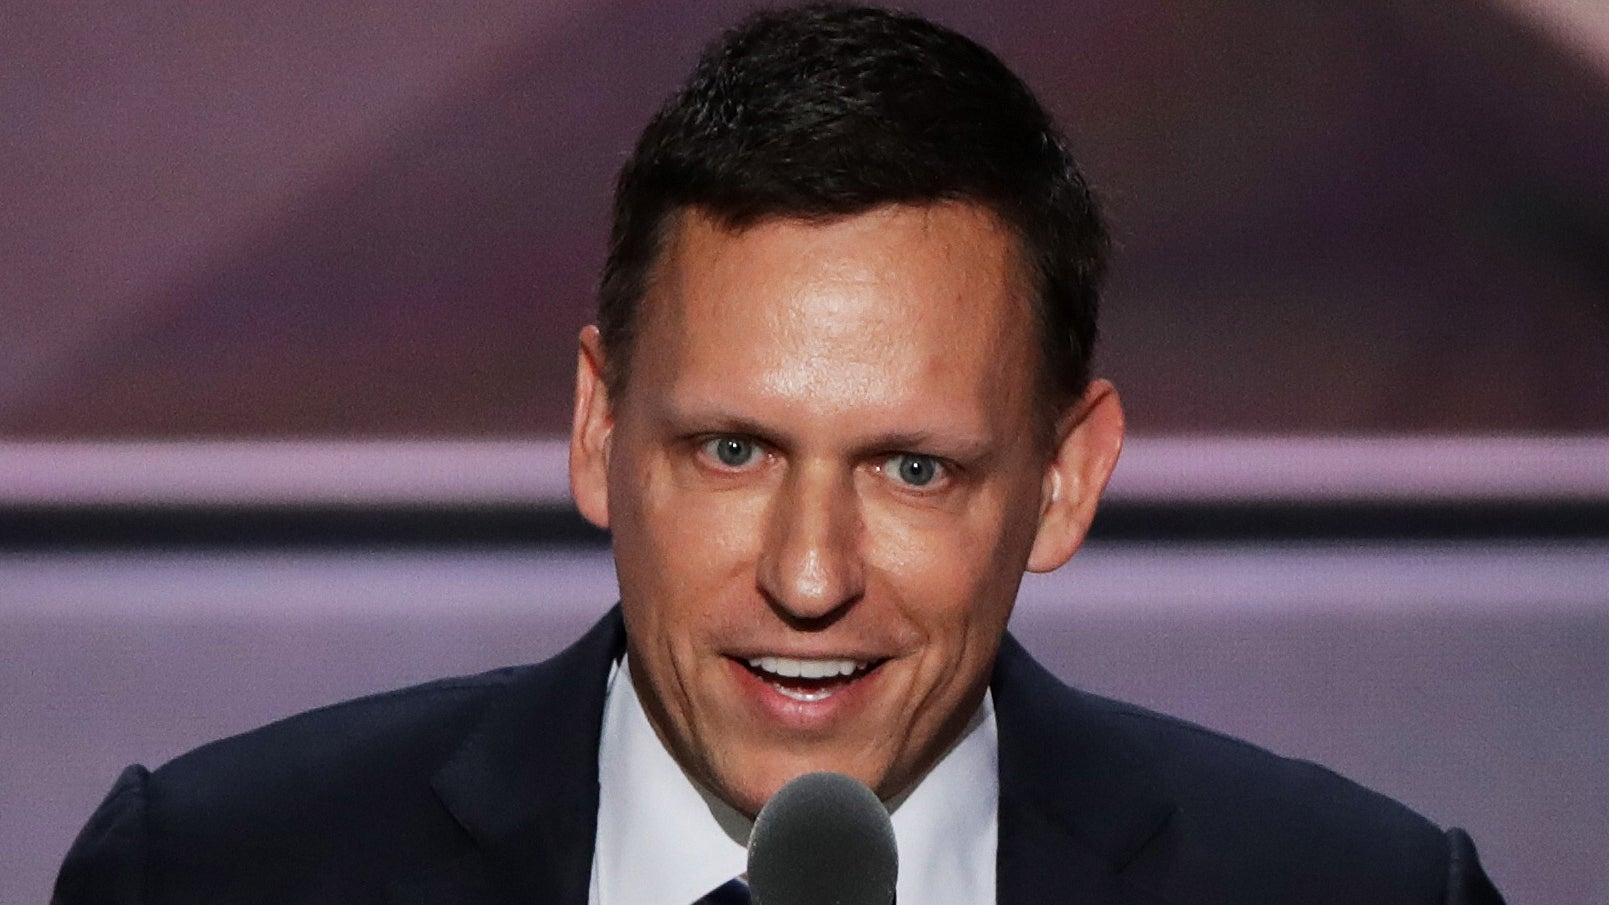 Peter Thiel Goes On The Record About Injections Of Young Blood